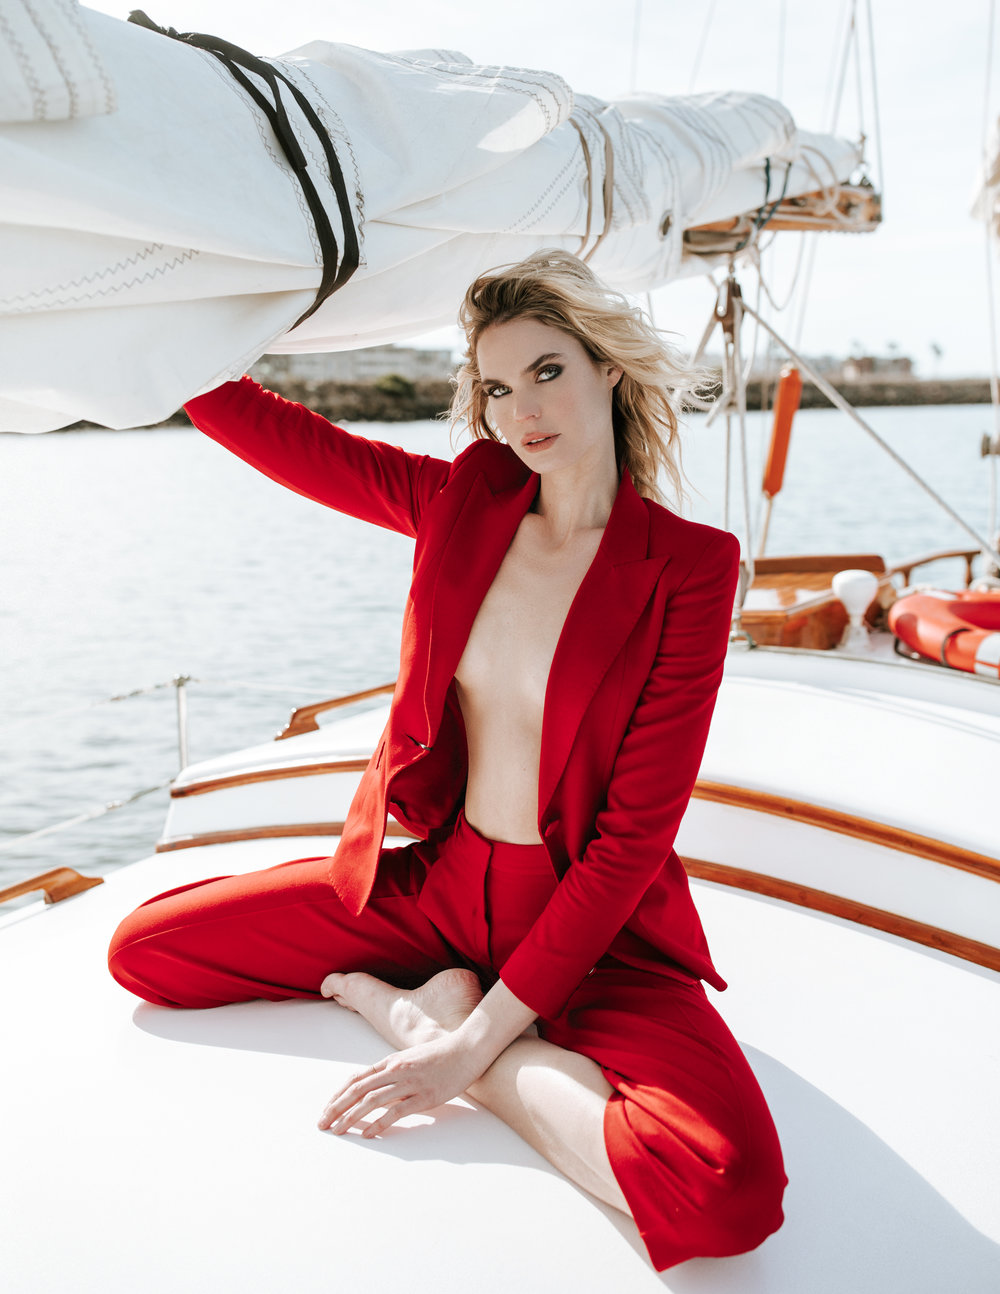 Sailing Editorials (35 of 36).jpg